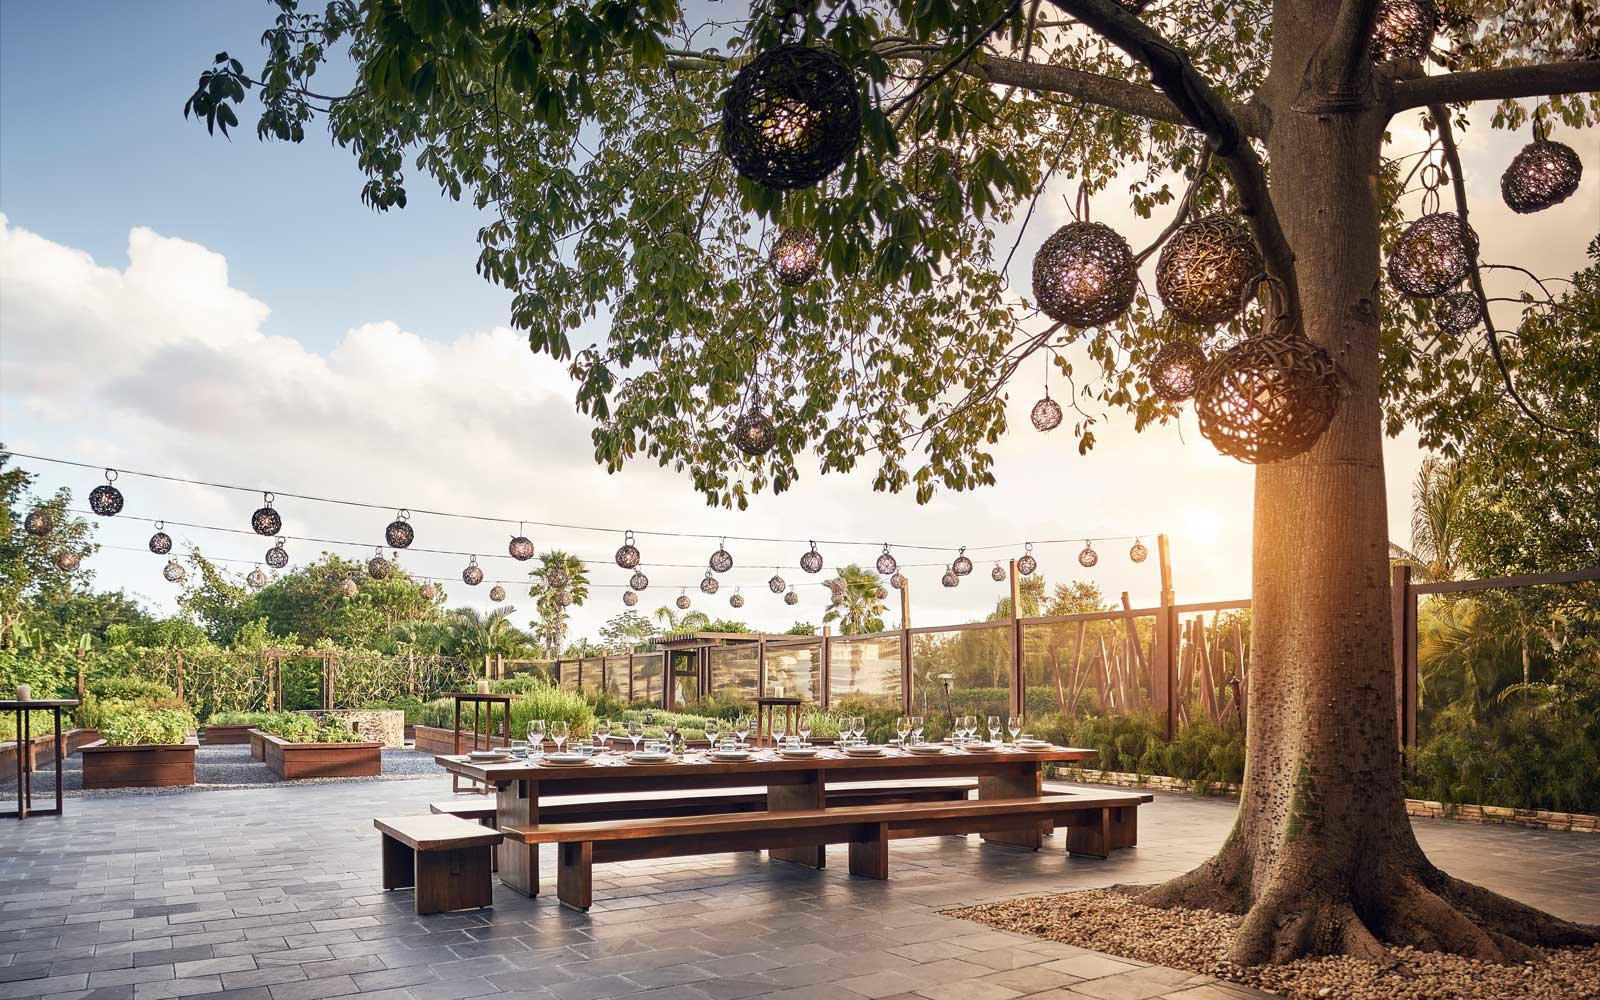 Outdoor dining setup at the Rosewood Mayakoba resort